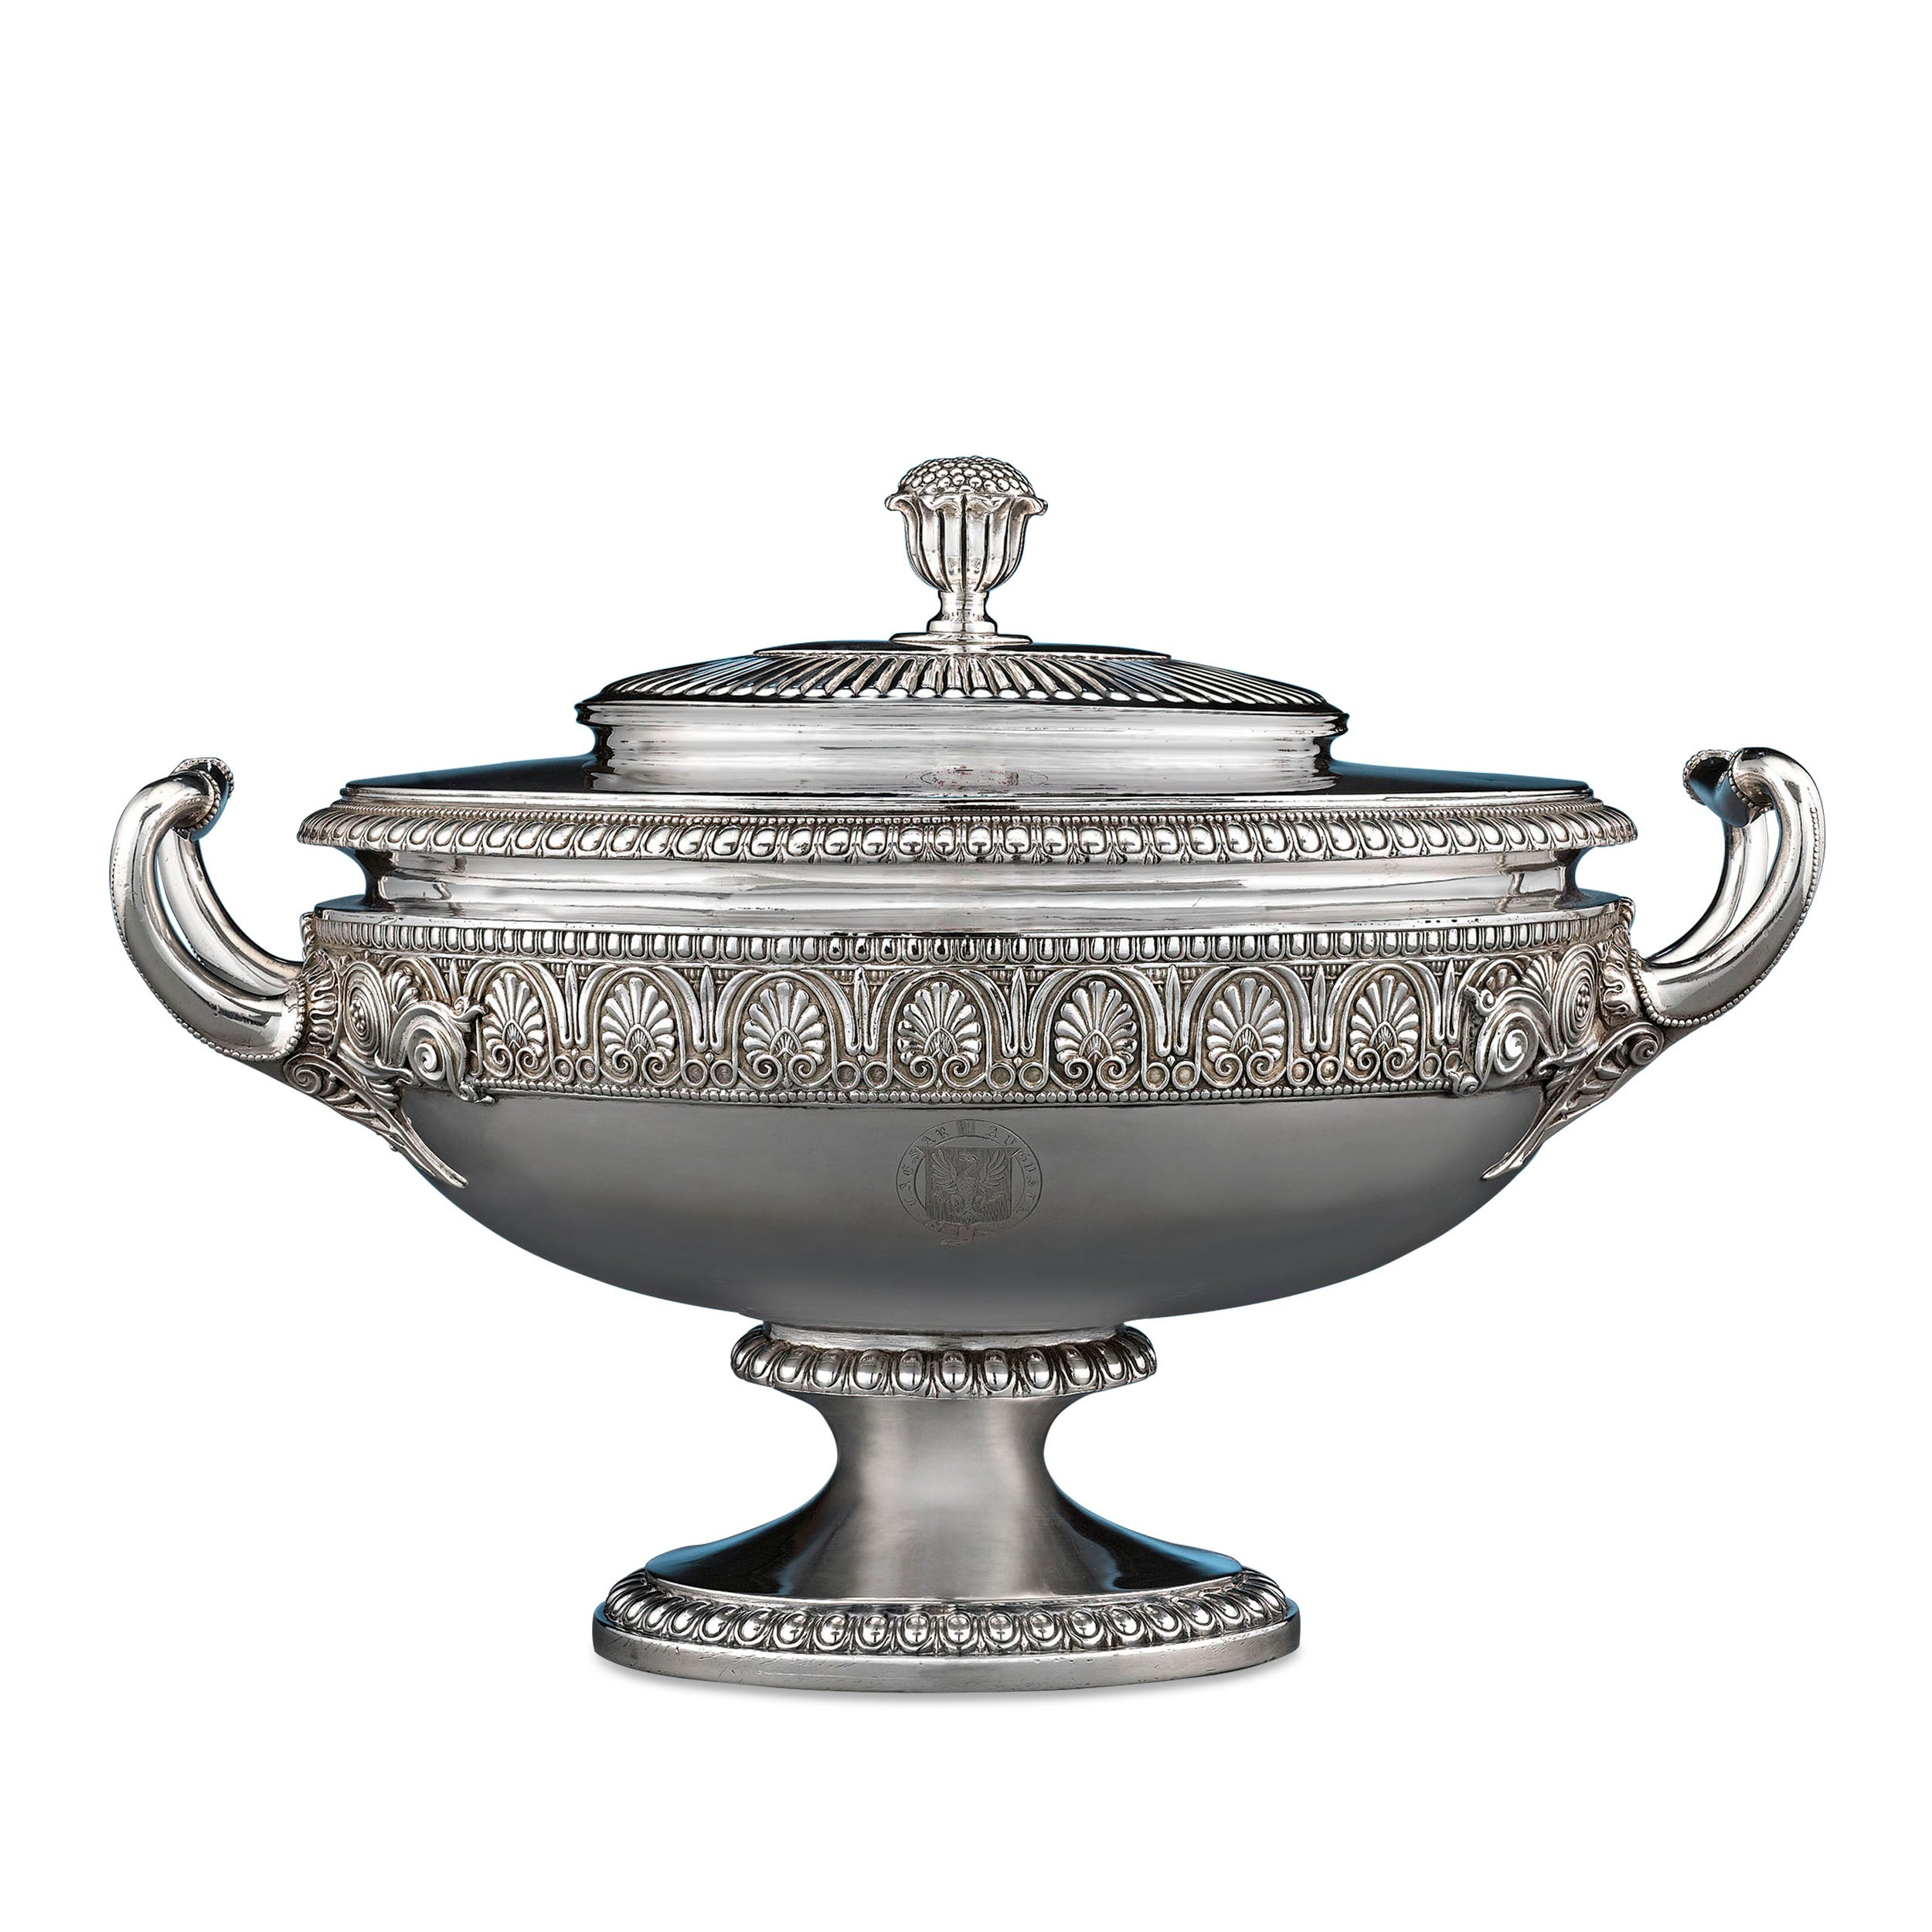 George IV Silver Tureen by Paul Storr